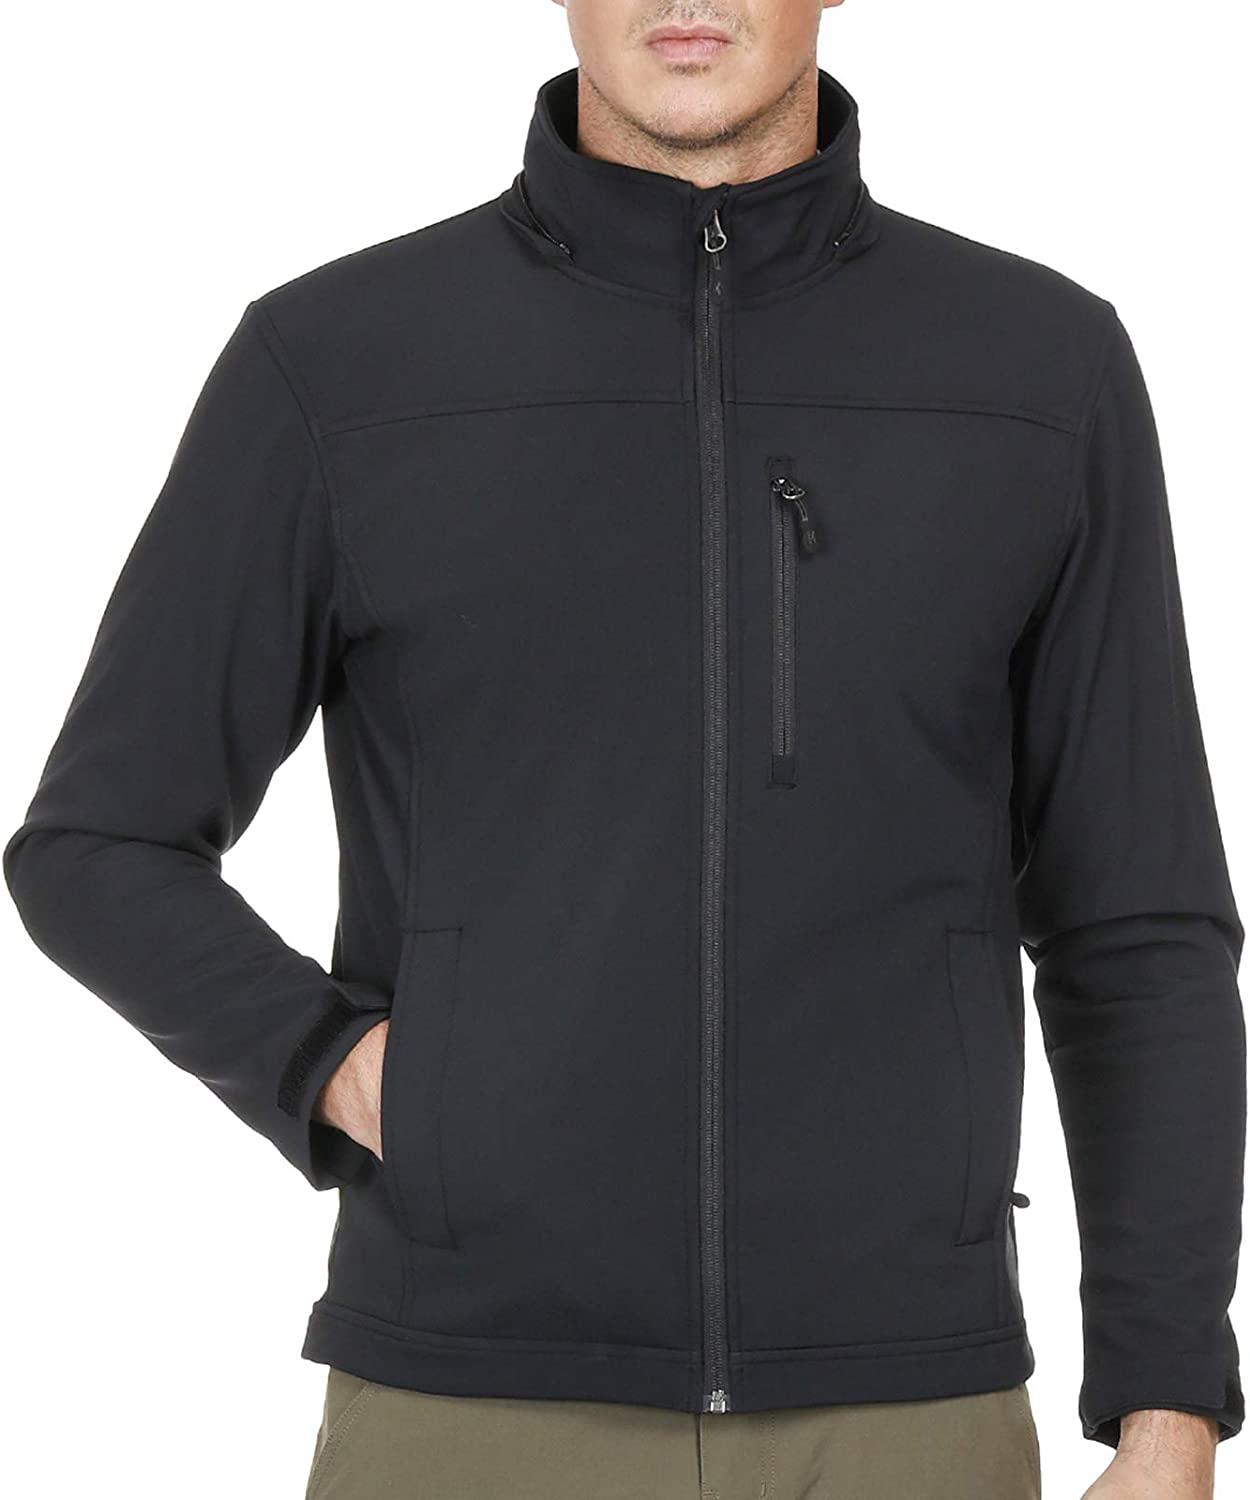 MIER Men's Tactical Softshell Jacket Fleece Lined Water Resistant Outerwear, Black